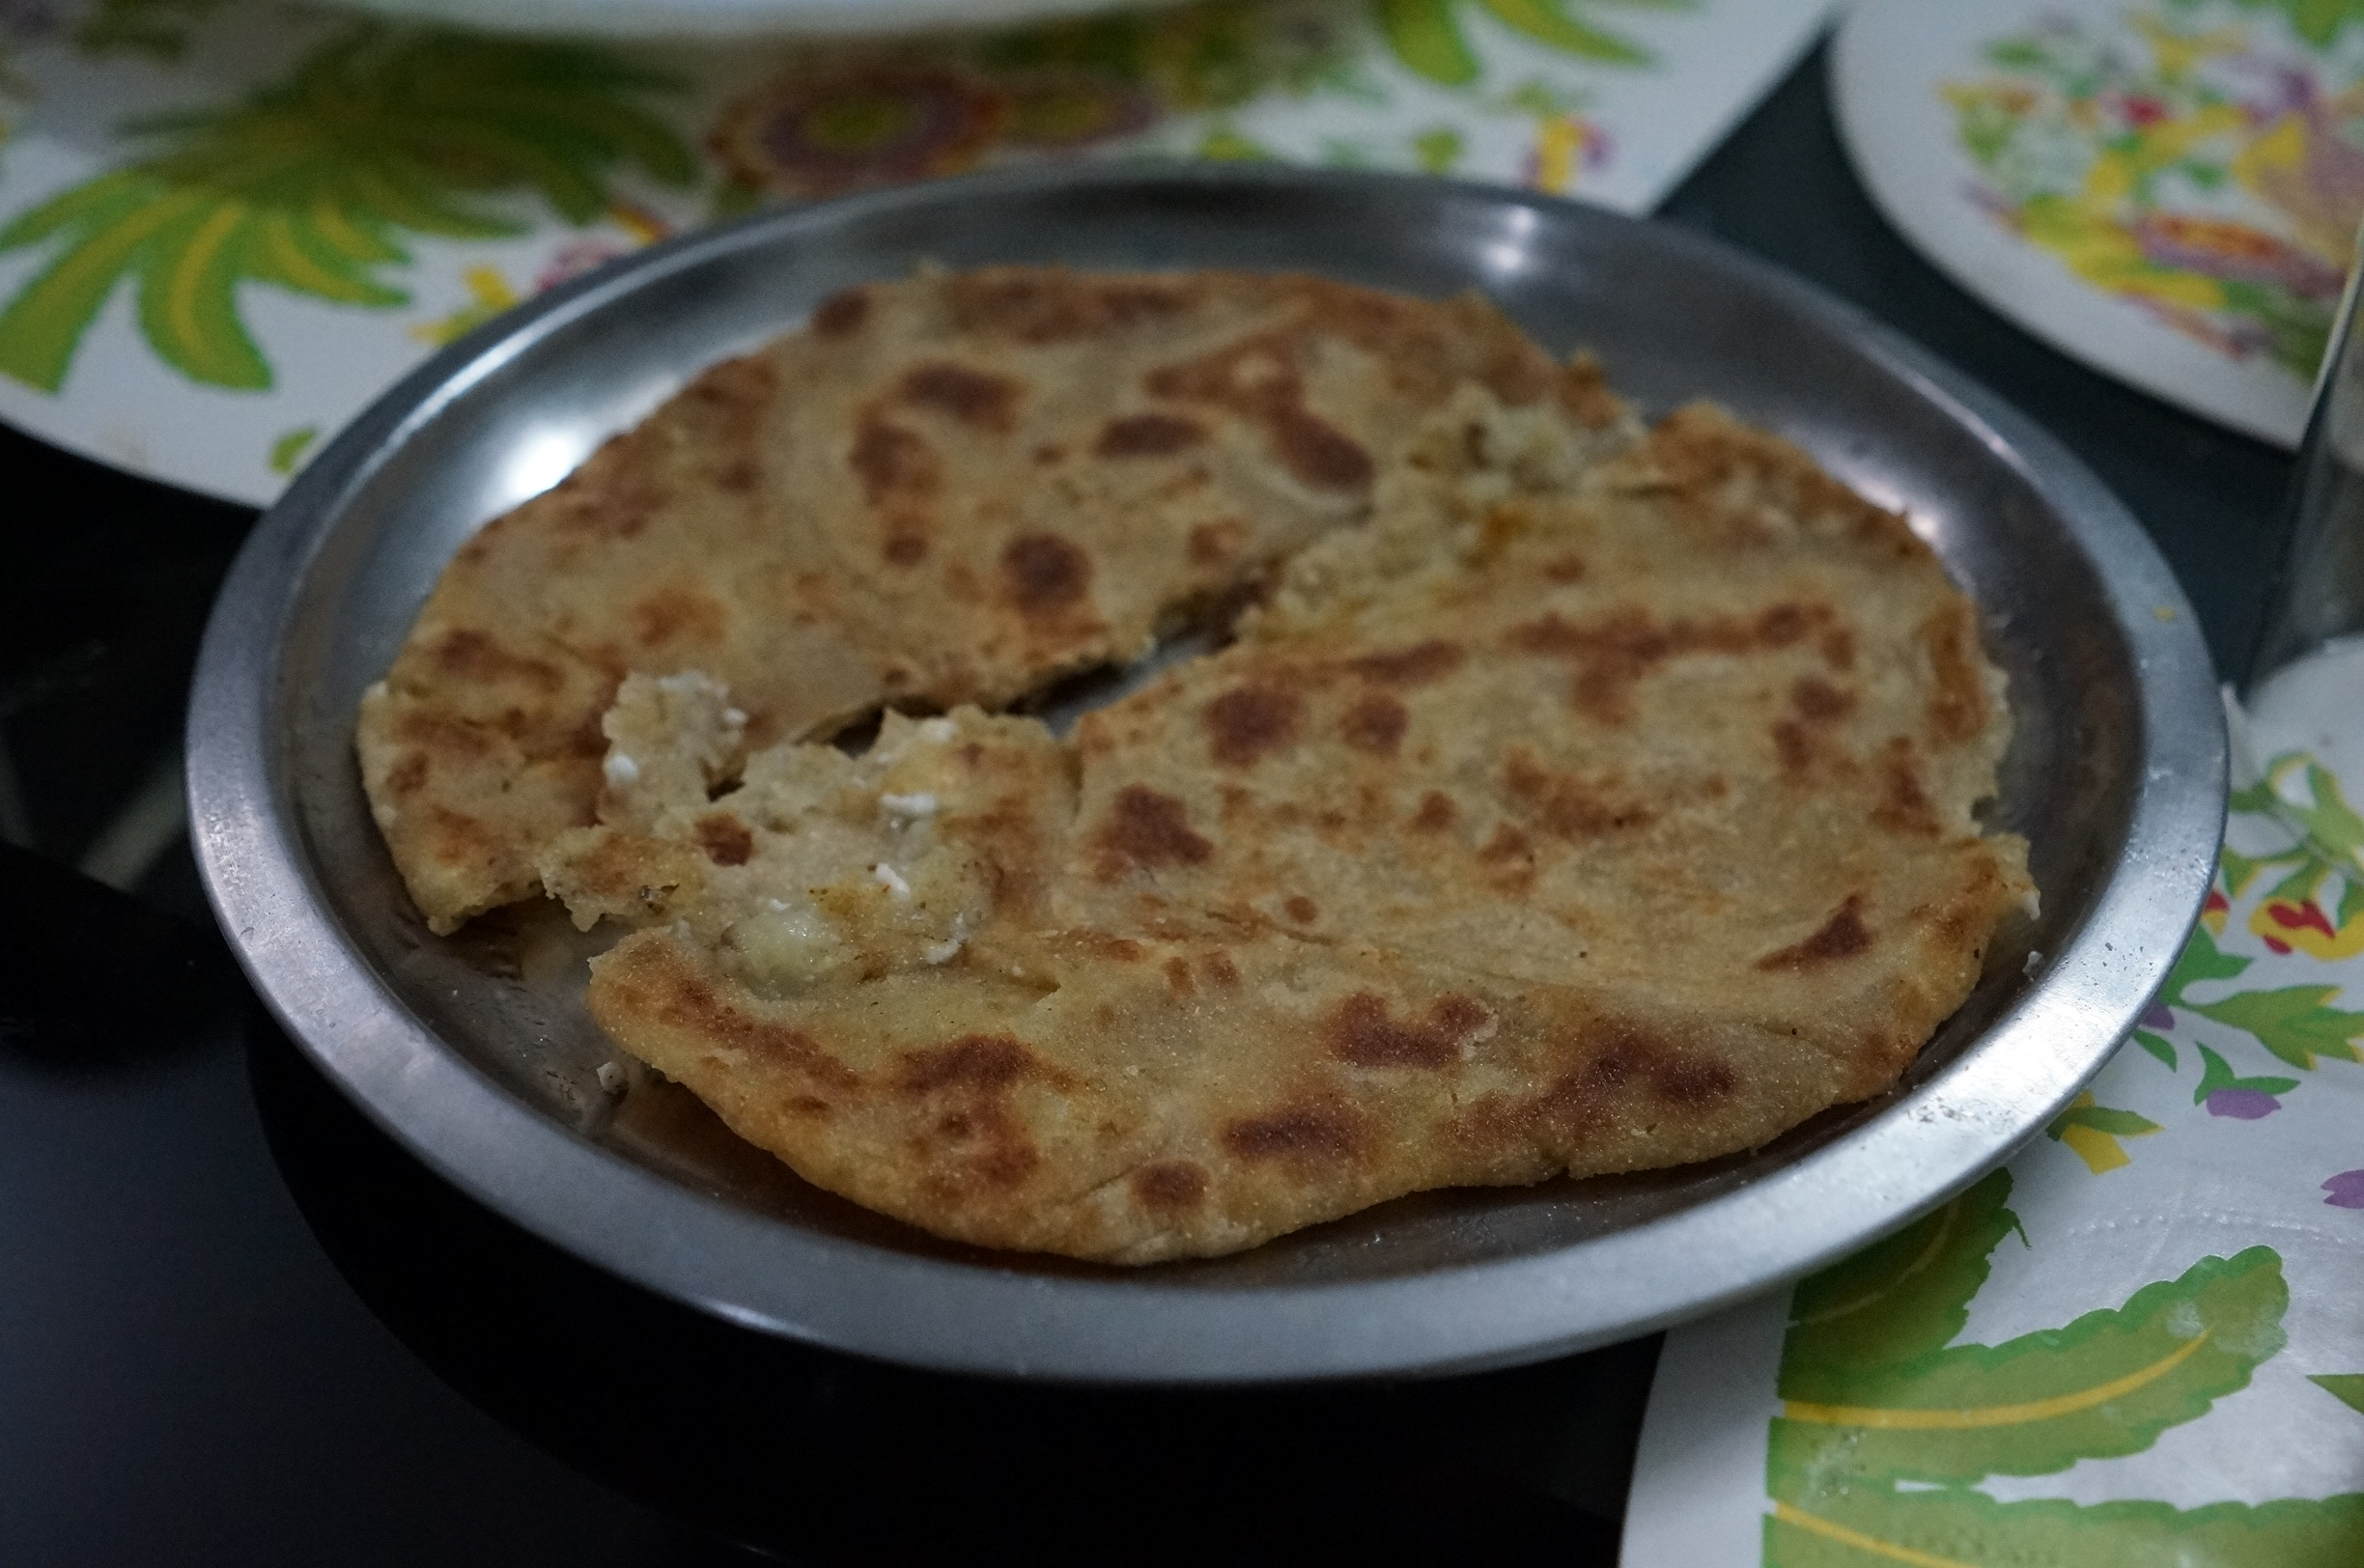 Aloo Paratha - flatbread stuffed with potatoes(stuffed potatoes were made from potatoes, onions, coriander, and spices). The best way to eat this is with ghee!